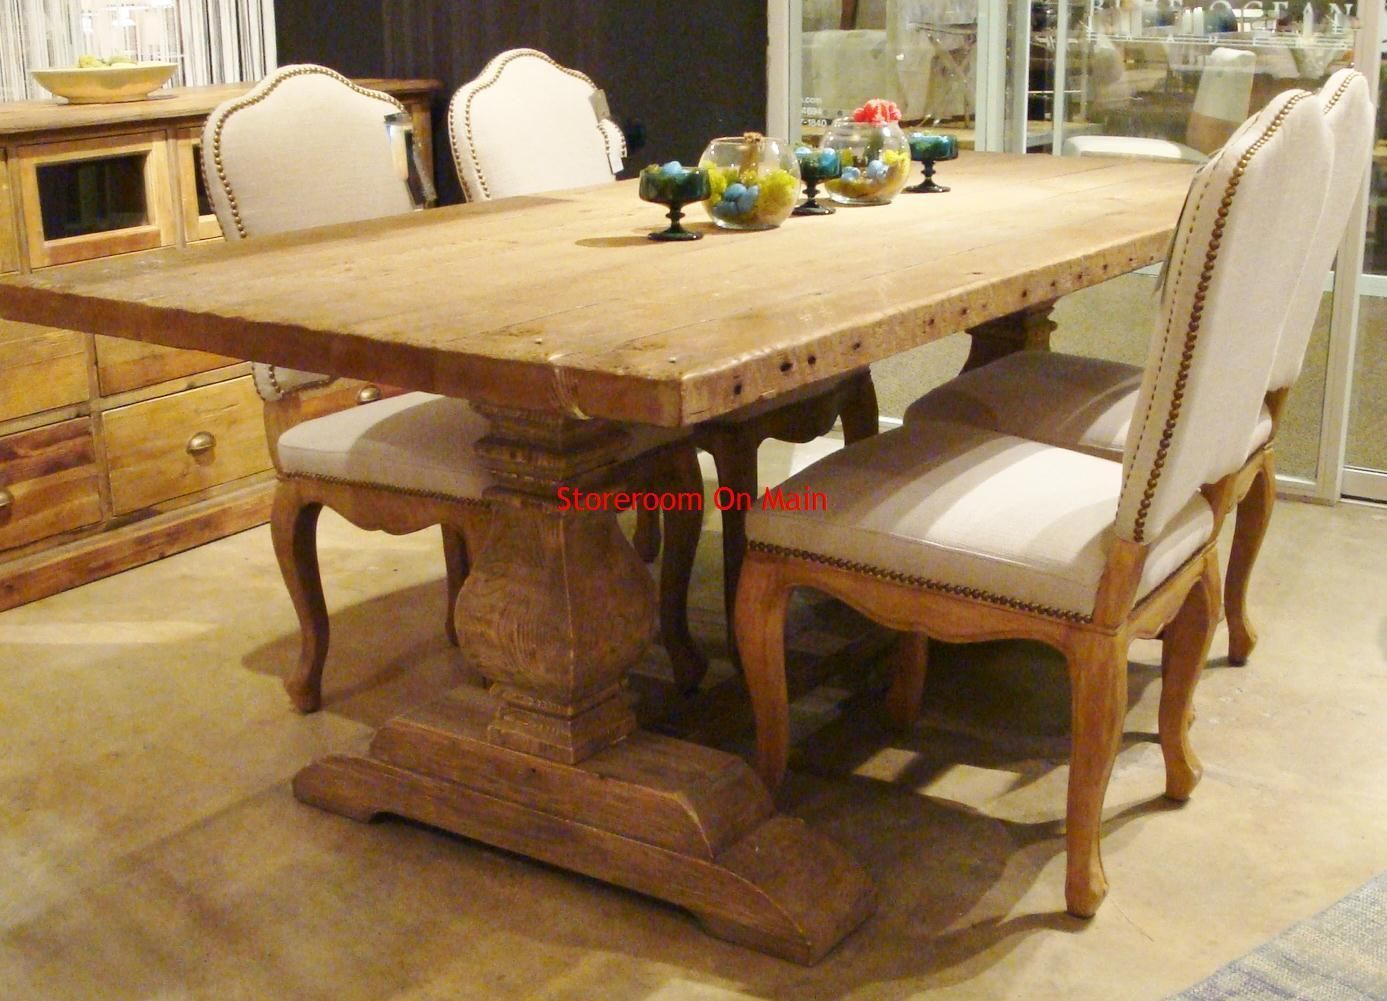 Reclaimed Wood Dining Table | Bleached Pine Reclaimed Wood ...